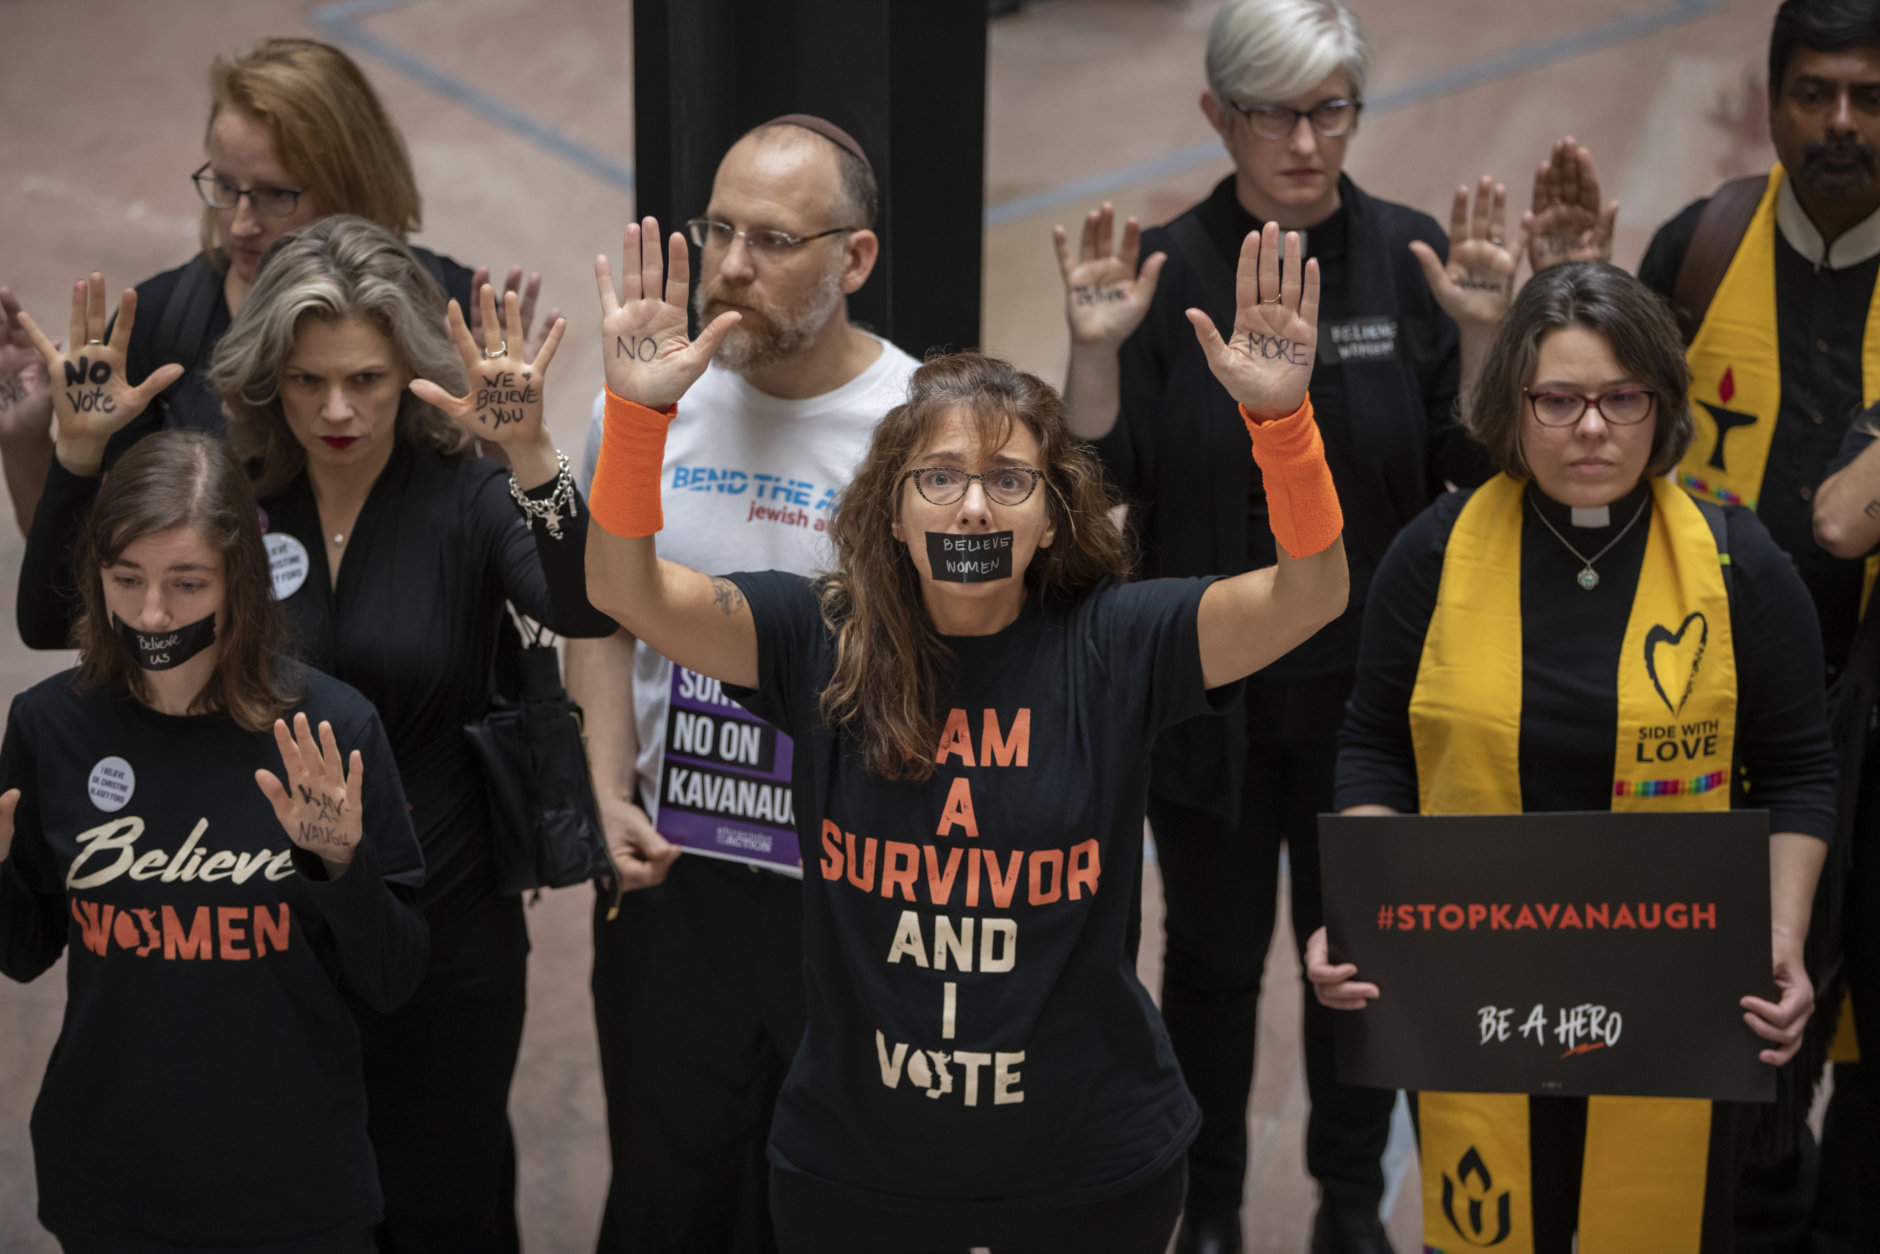 Protesters demonstrate in the Hart Senate Office Building as the Senate Judiciary Committee hears from Supreme Court nominee Brett Kavanaugh and Christine Blasey Ford on Capitol Hill in Washington, Thursday, Sept. 27, 2018. (AP Photo/J. Scott Applewhite)